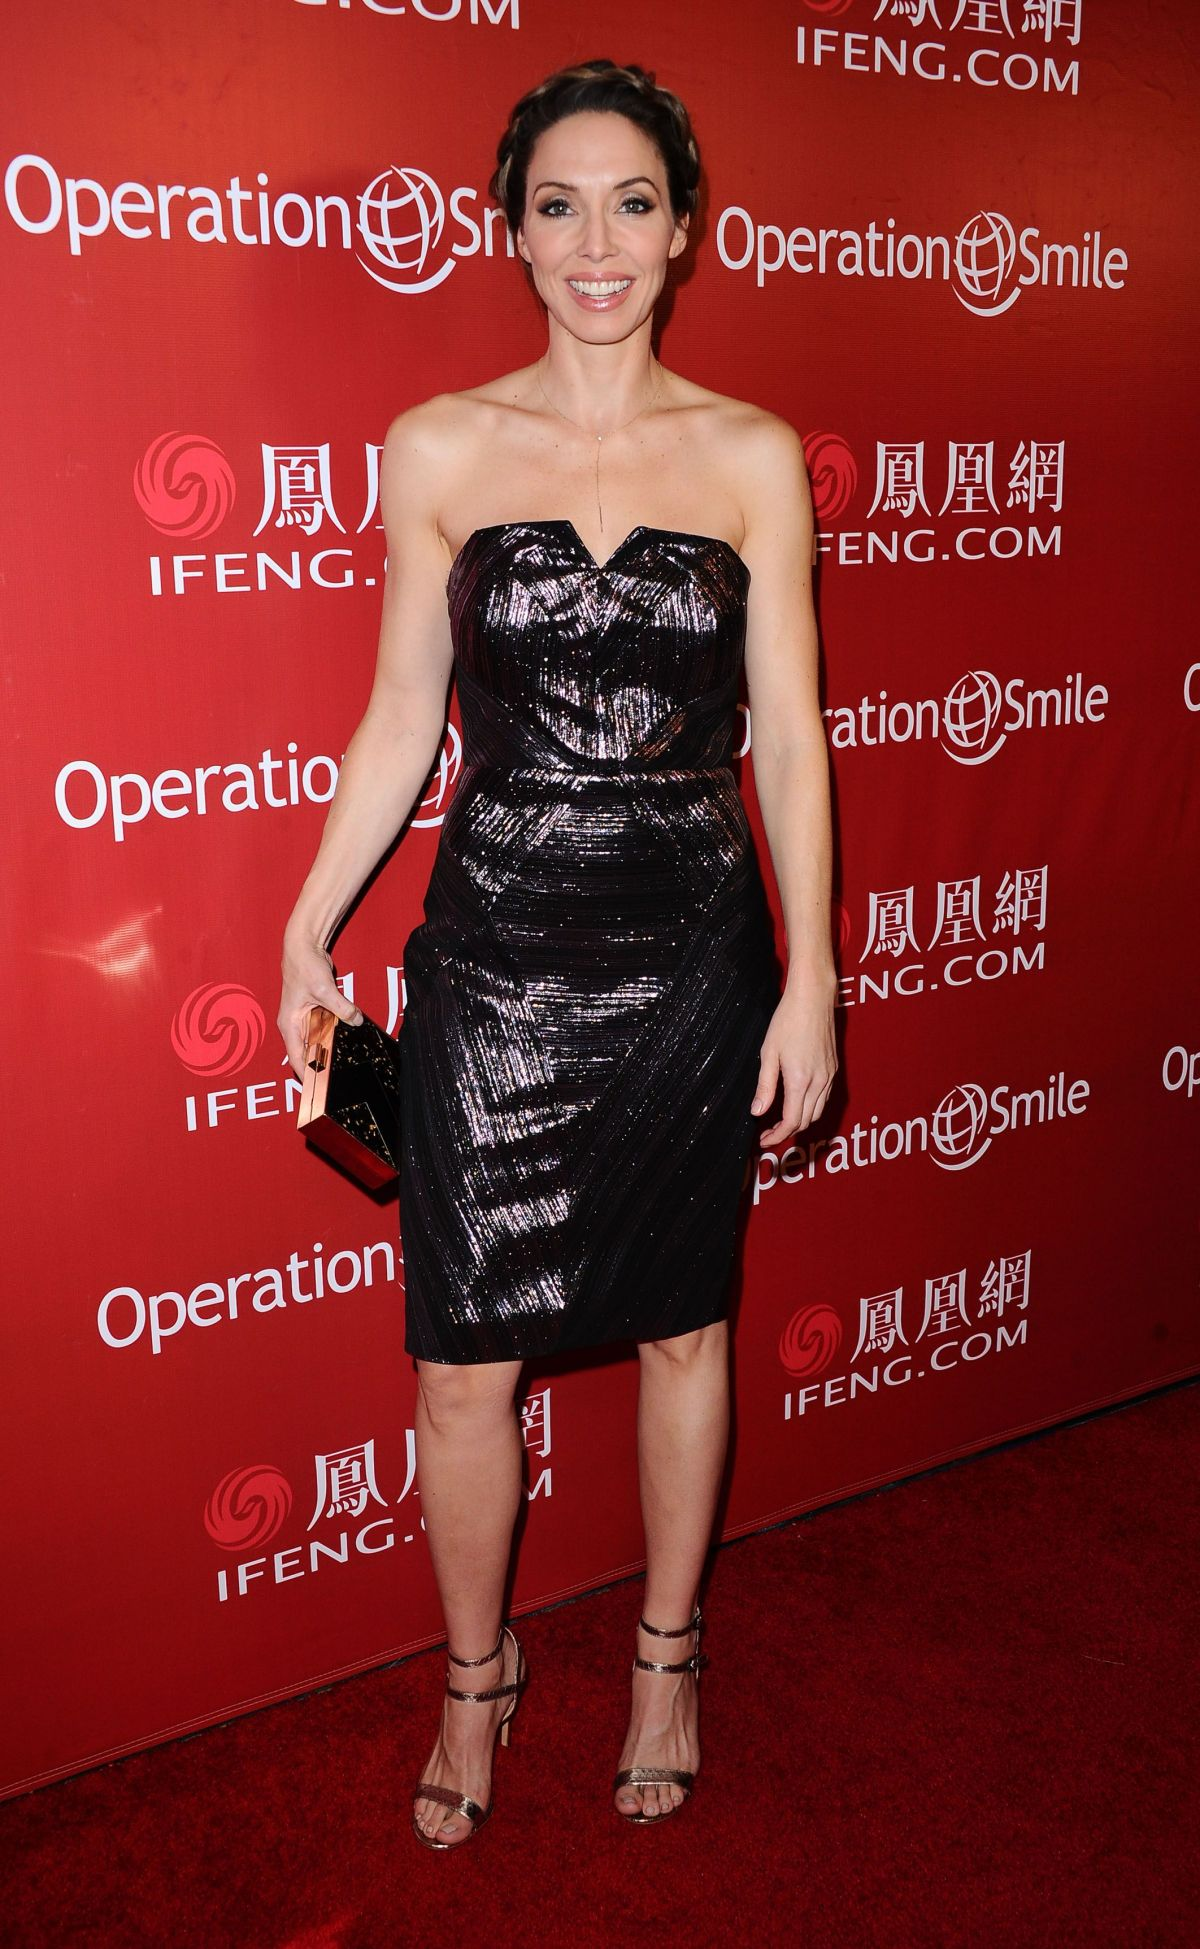 WHITNEY CUMMINGS at Operation Smile Gala in Beverly Hills 09/30/2016 - HawtCelebs